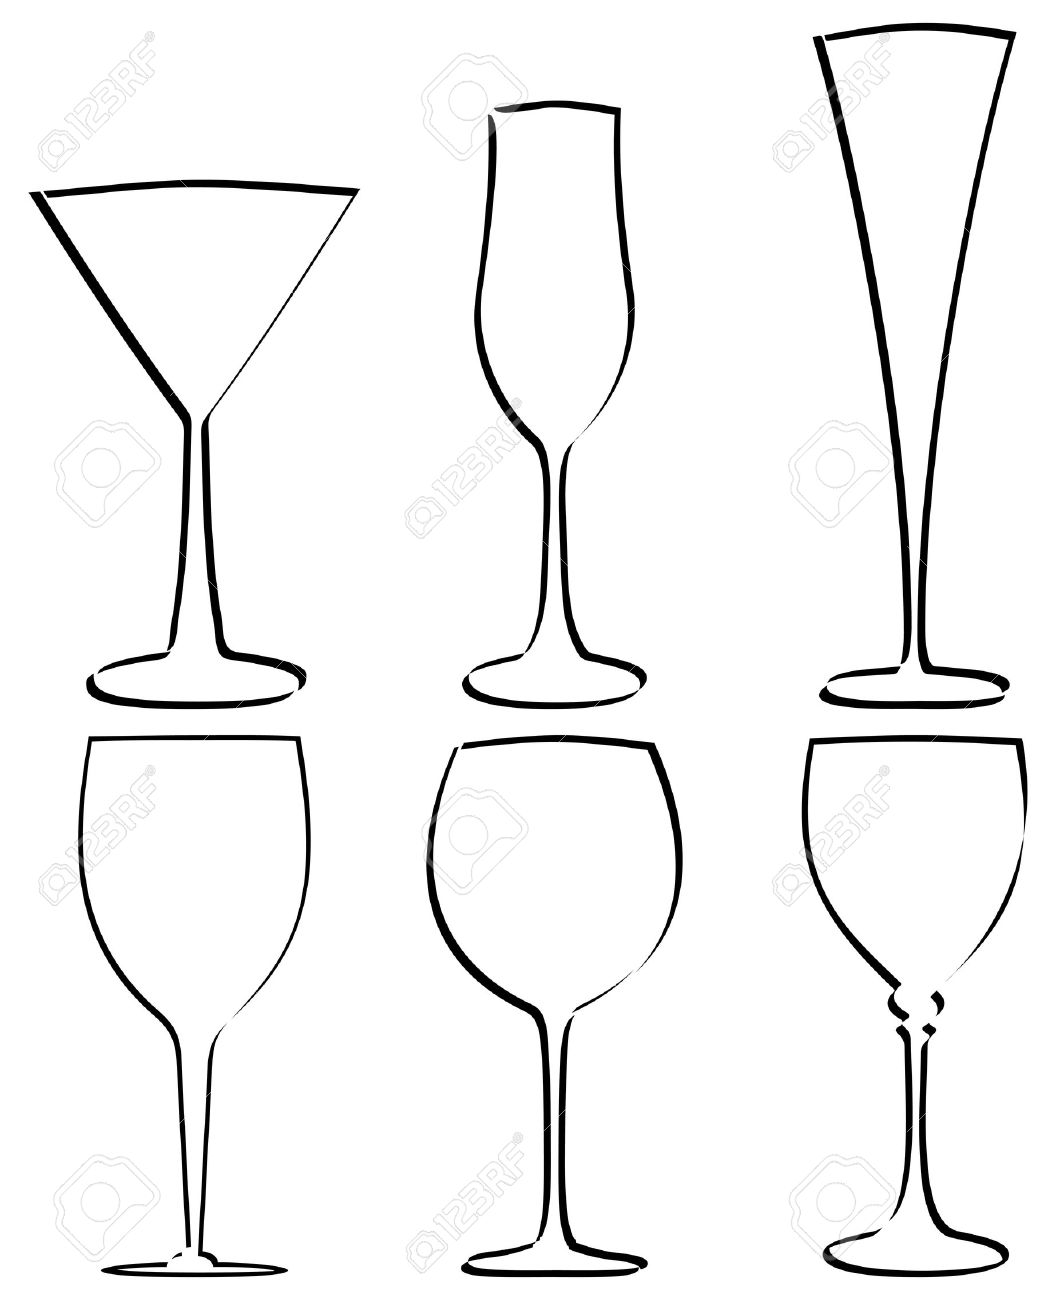 Isolated stem glass outline on a white background. Vector illustration. Stock Vector - 8381658